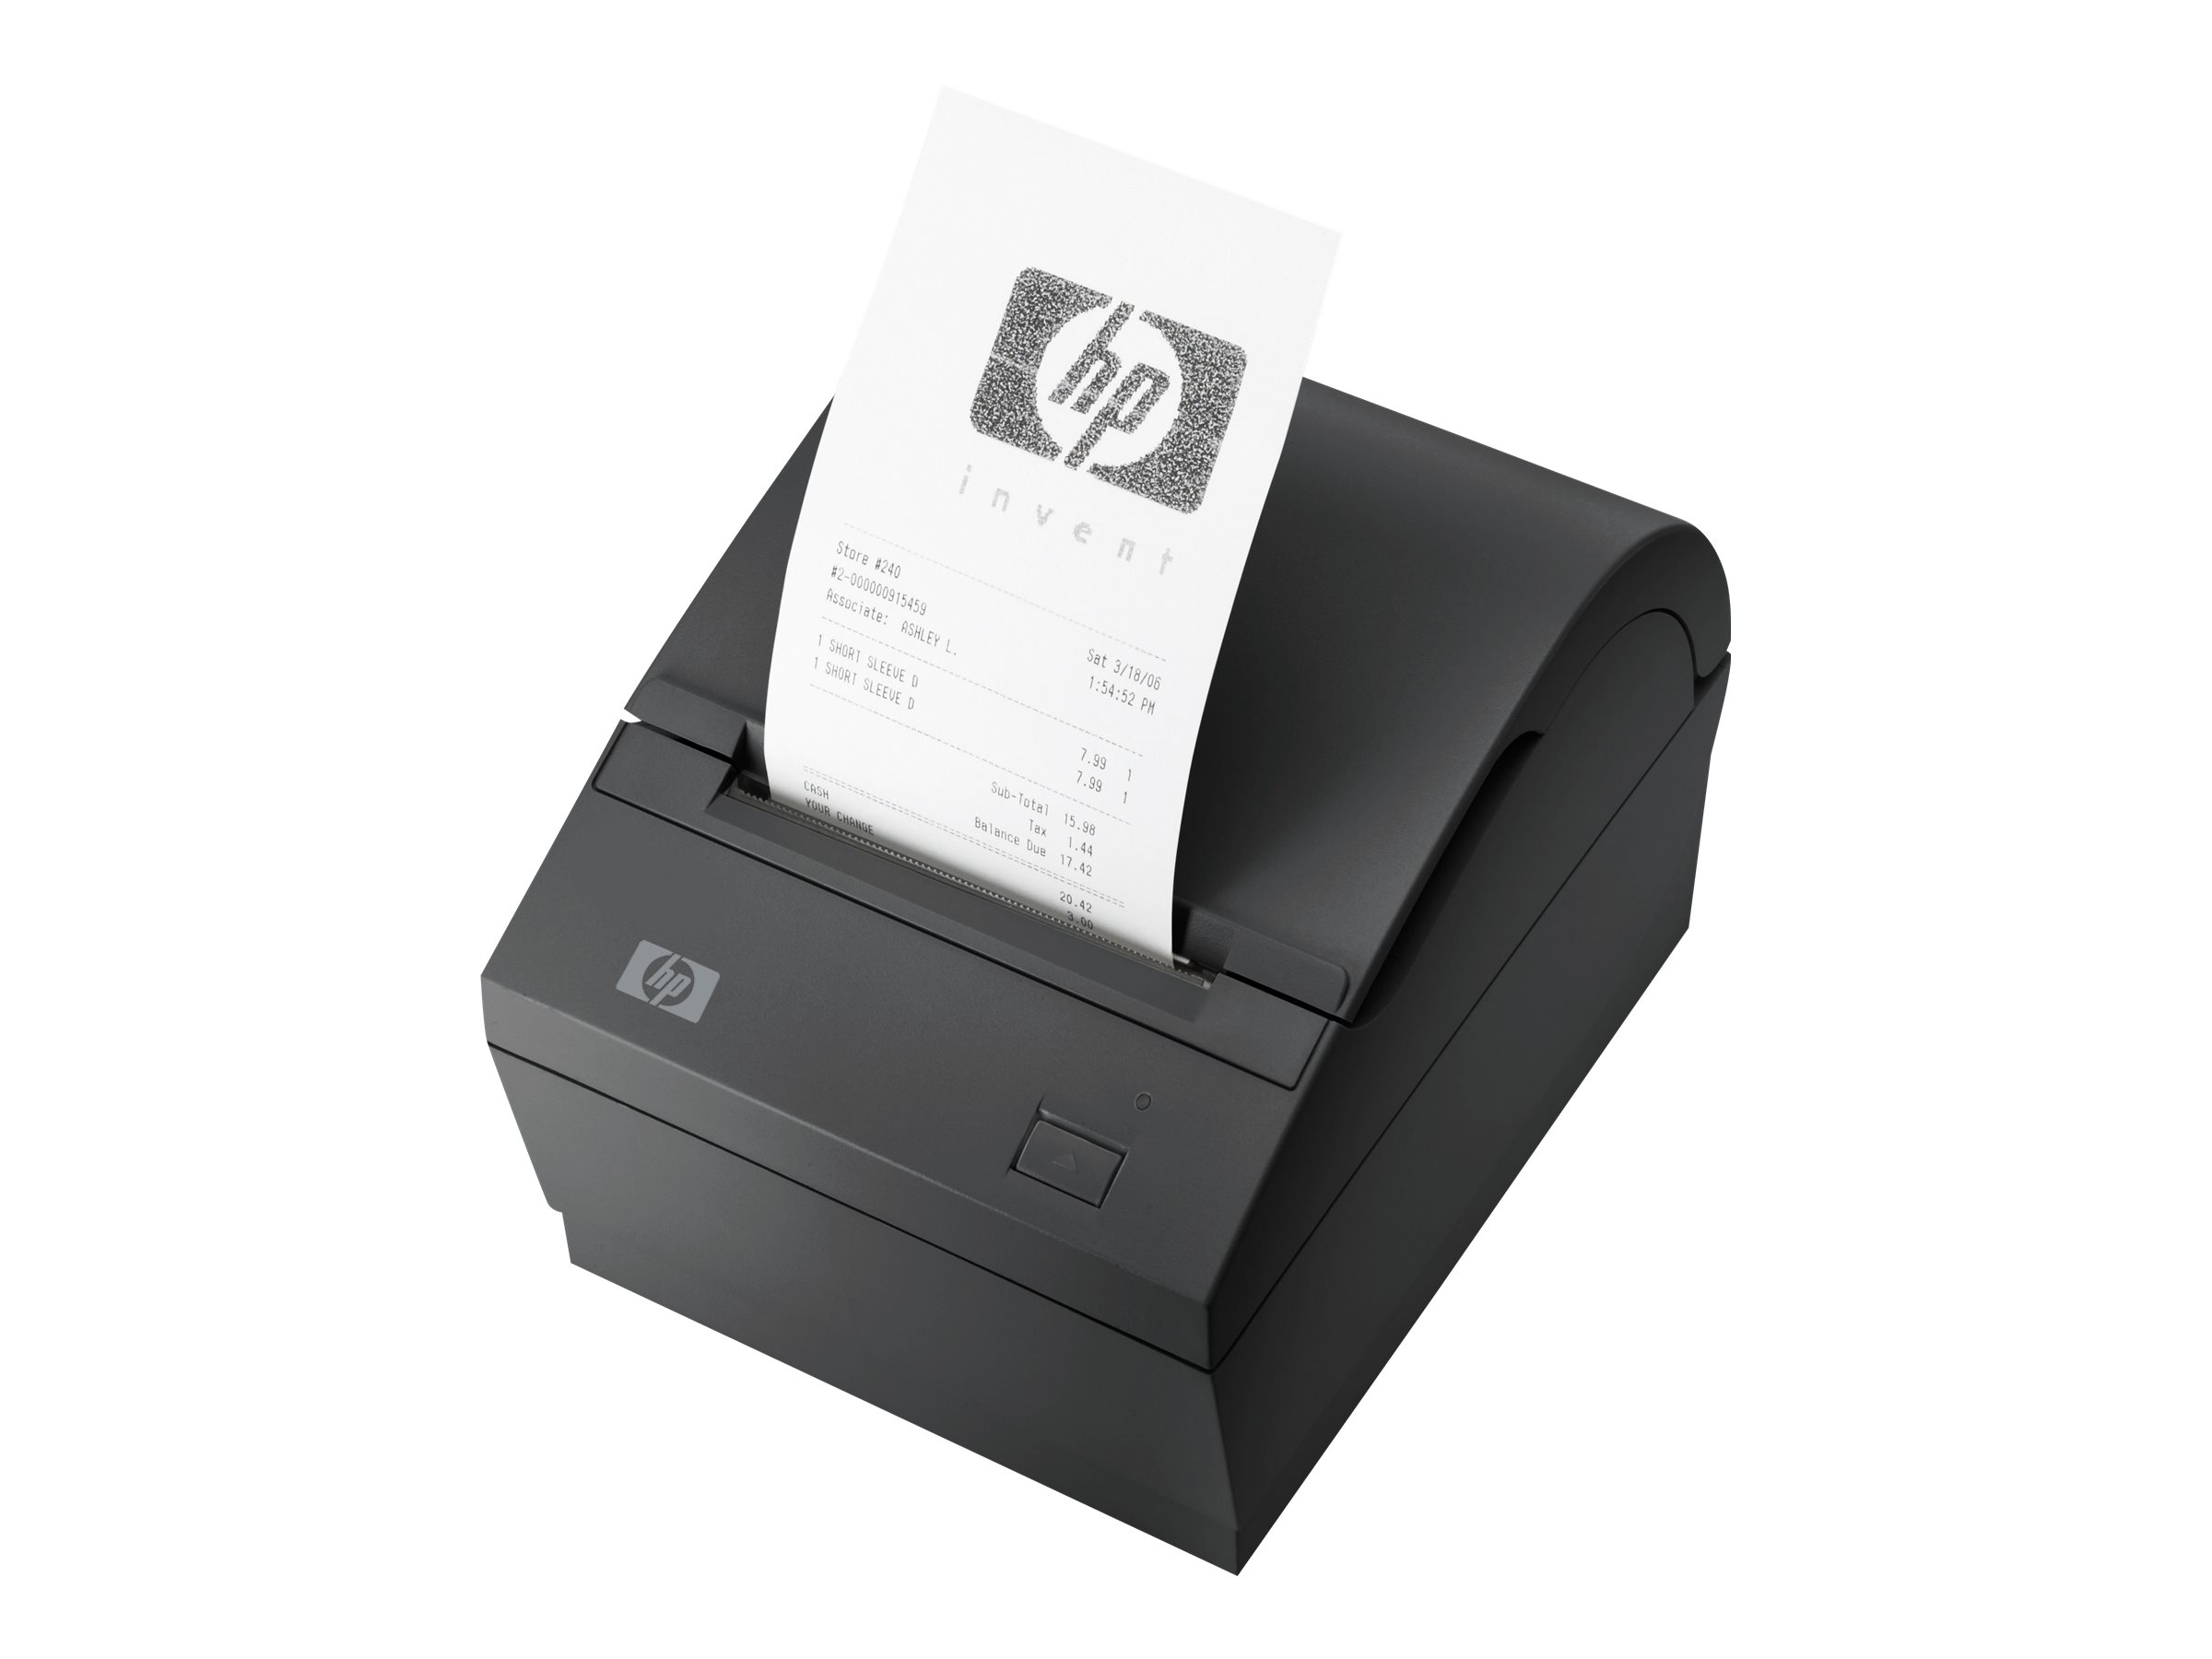 HP Single Station Thermal Receipt Printer - Belegdrucker - zweifarbig (monochrom) - Thermopapier - Rolle (0,8 cm) - 203 dpi